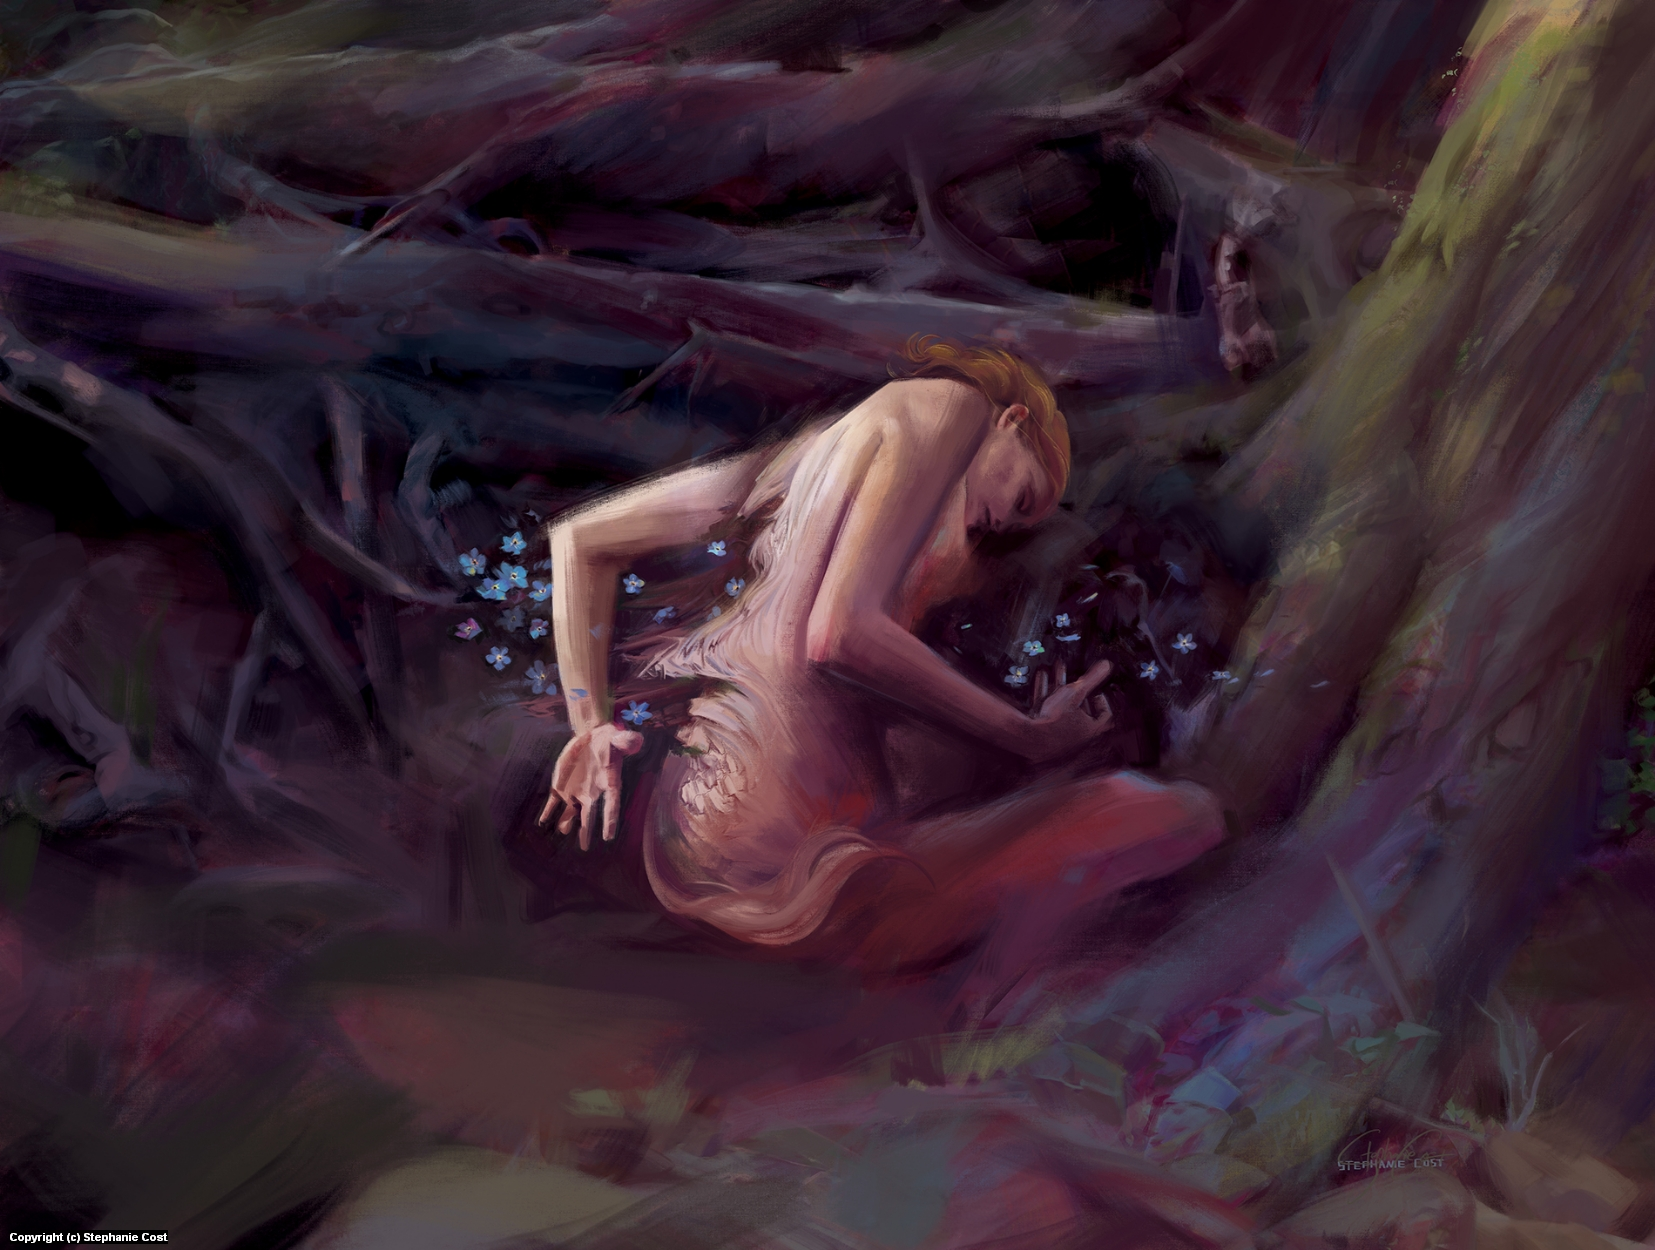 Coming Apart Artwork by Stephanie Cost